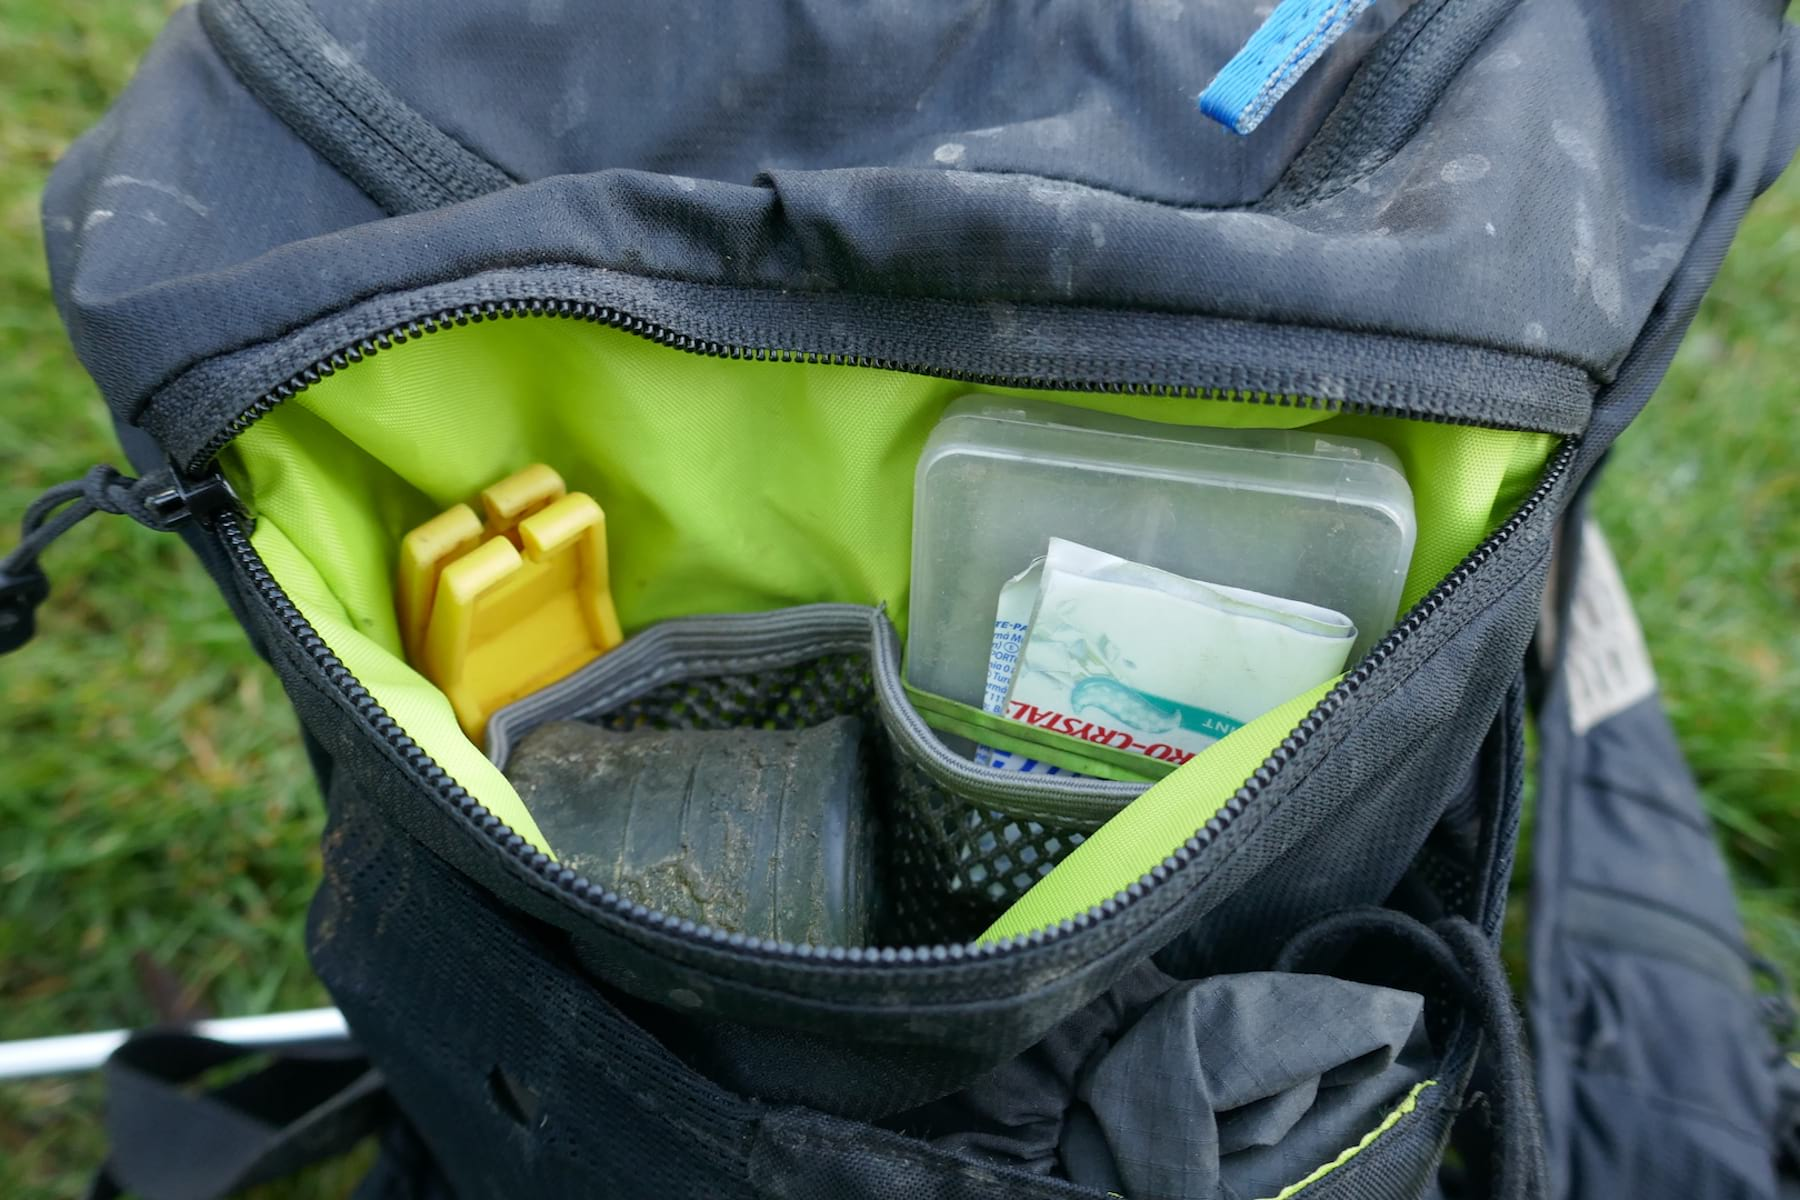 Review: The Camelbak Chase Bike Vest is a hydration pack for